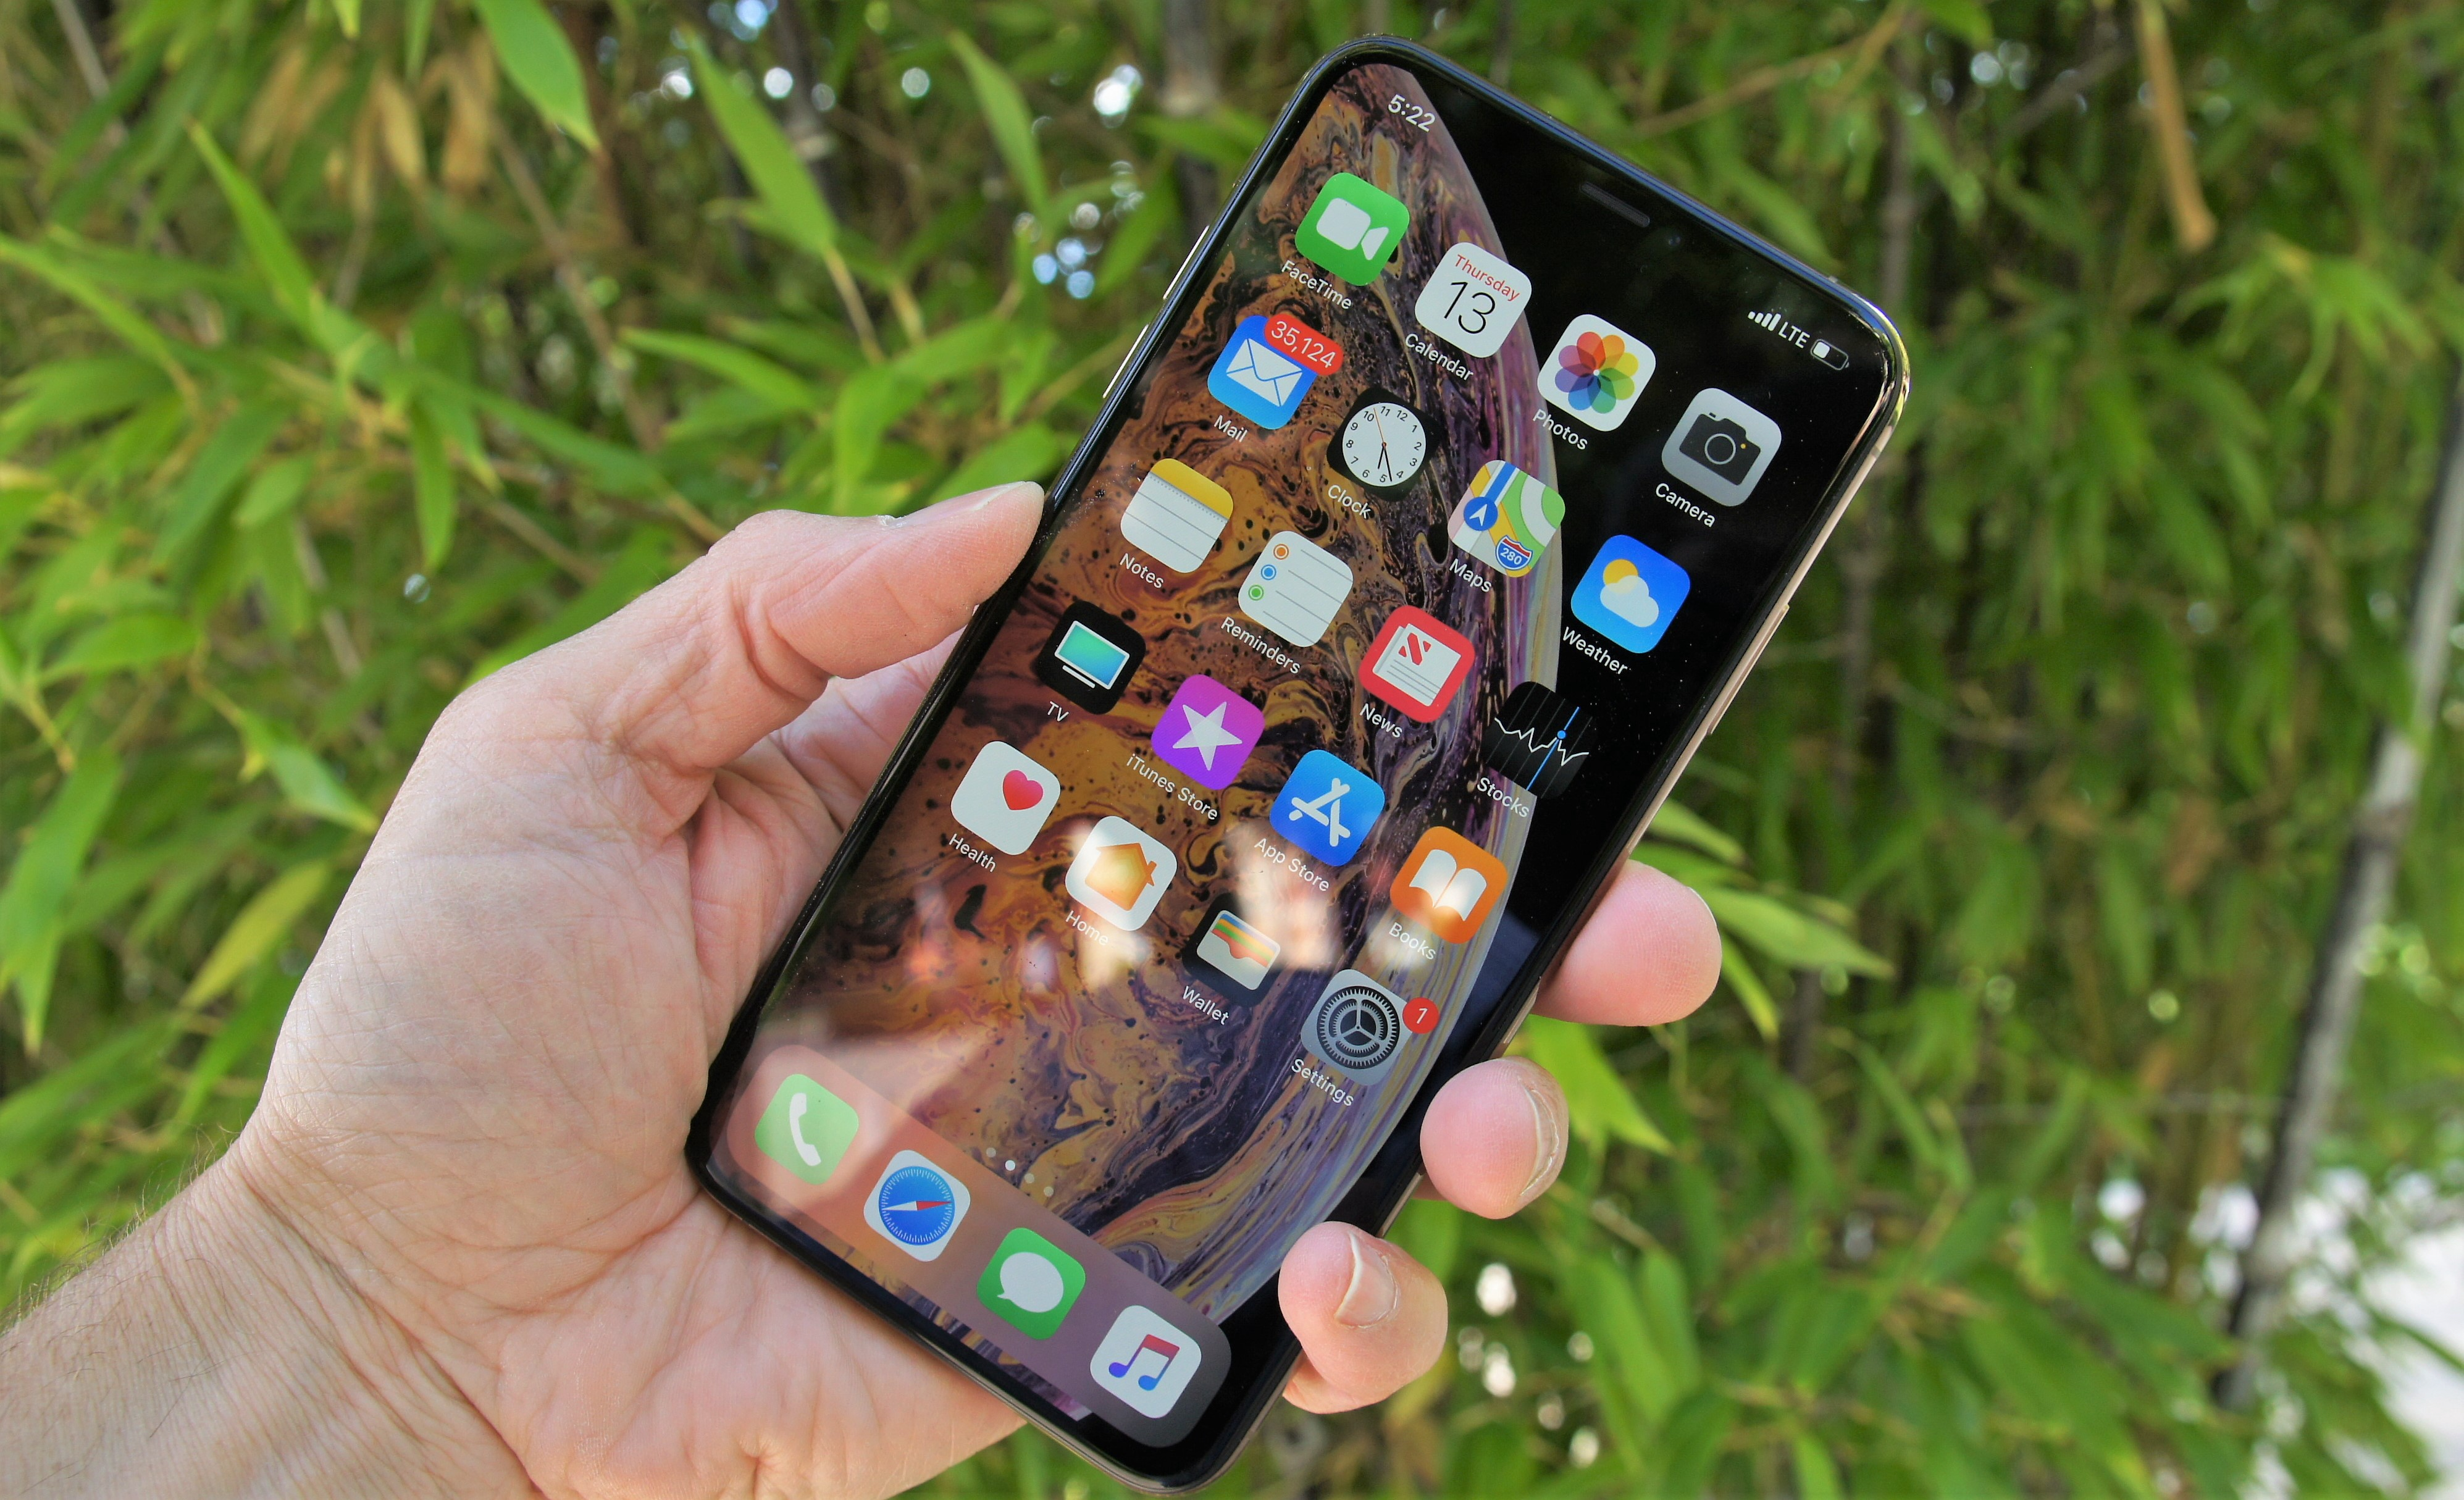 Apple's New iPhones Are Simply Excellent - Featured Stories